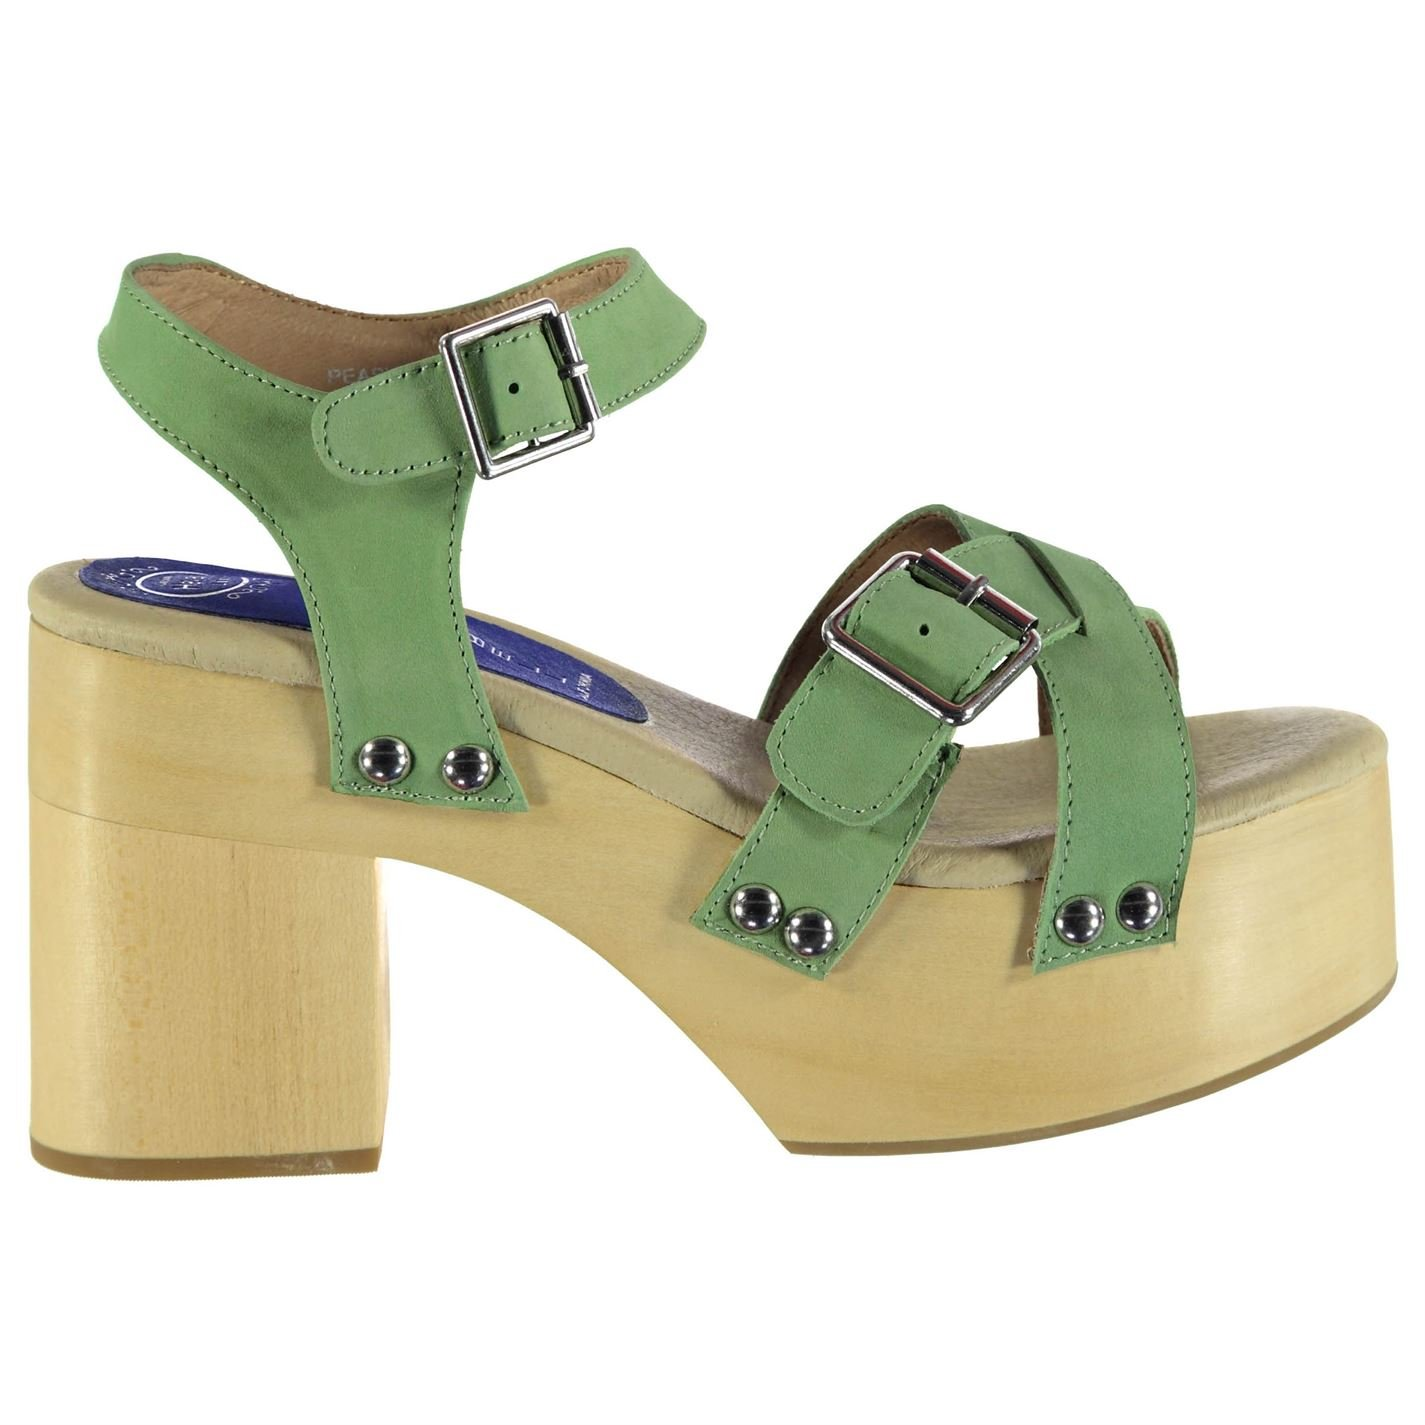 Jeffrey Campbell Womens Peasy Platform Heeled Shoes Sandals B01LZNDRMY UK 4 (37)|Green Nb